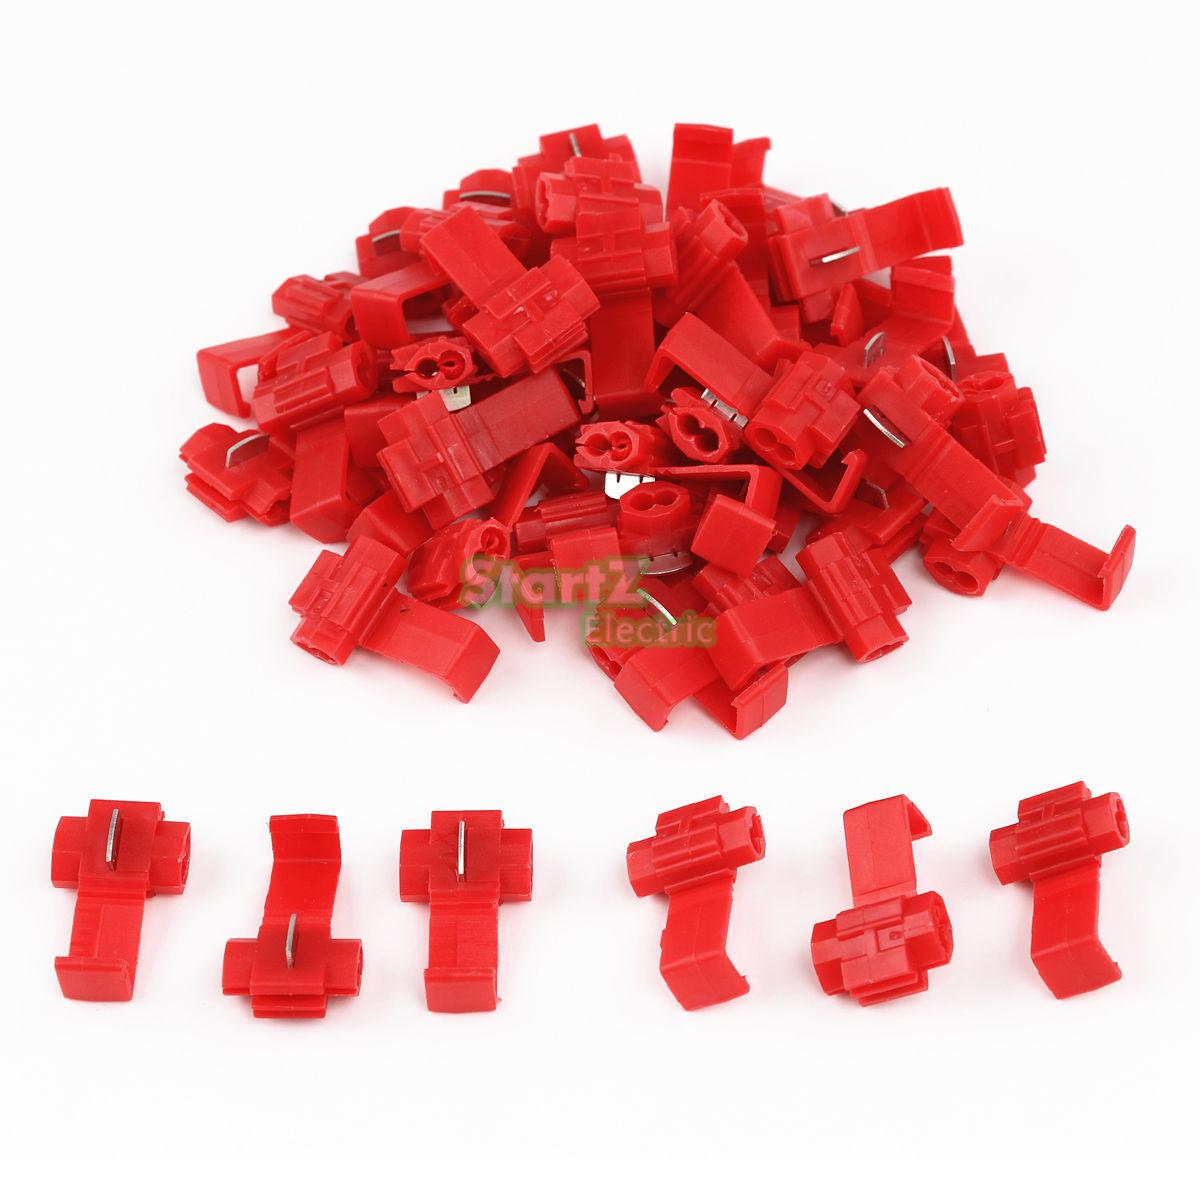 цены 50PCS Scotch Lock Wire Electrical Cable Connectors Quick Splice Terminals Crimp